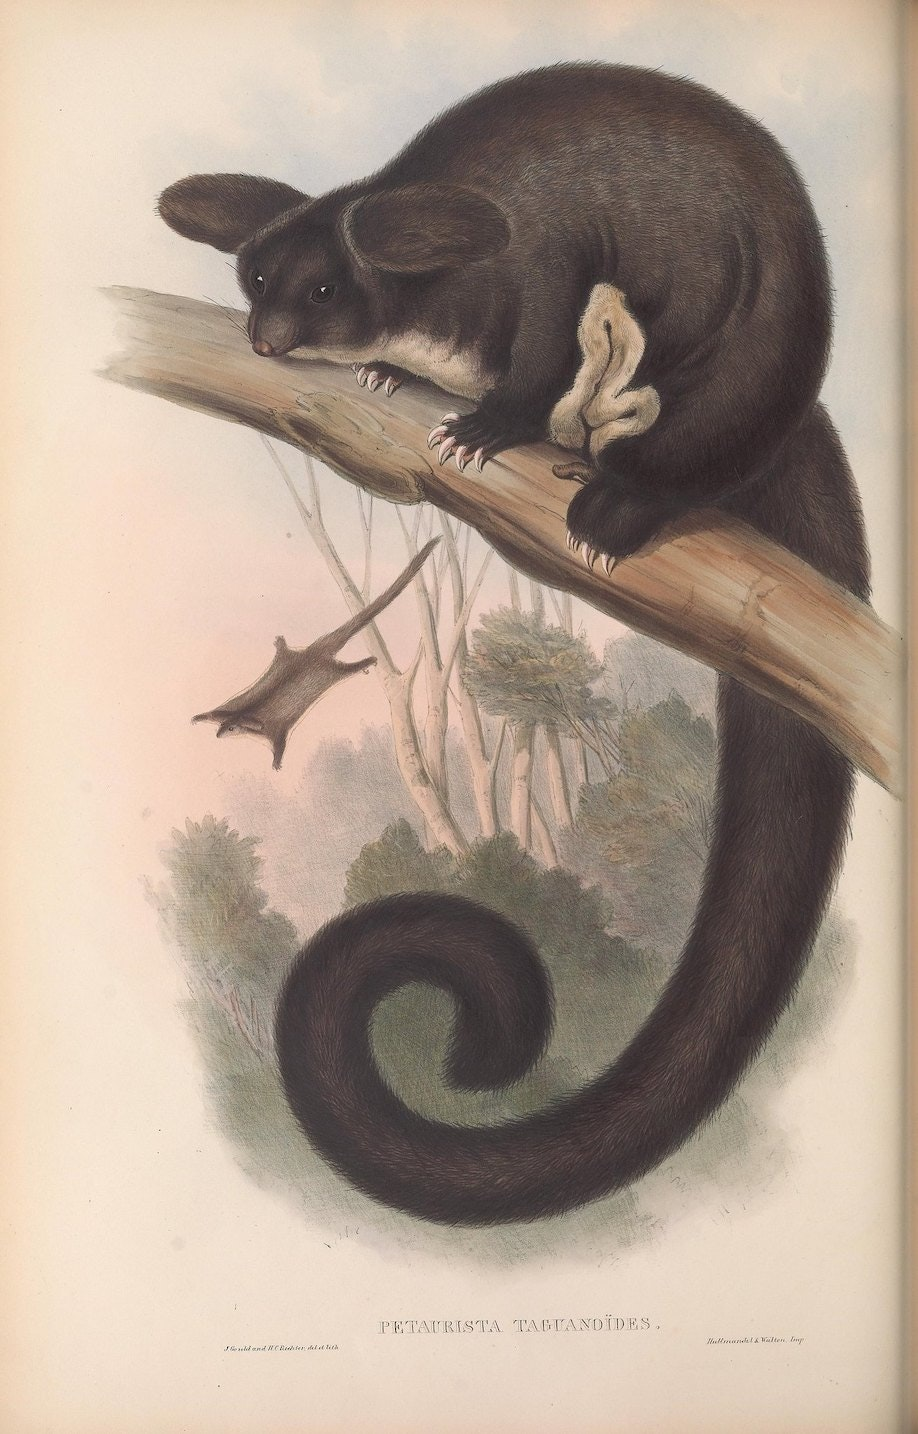 """Petaurista taguanoïdes, Flying Squirrel."""